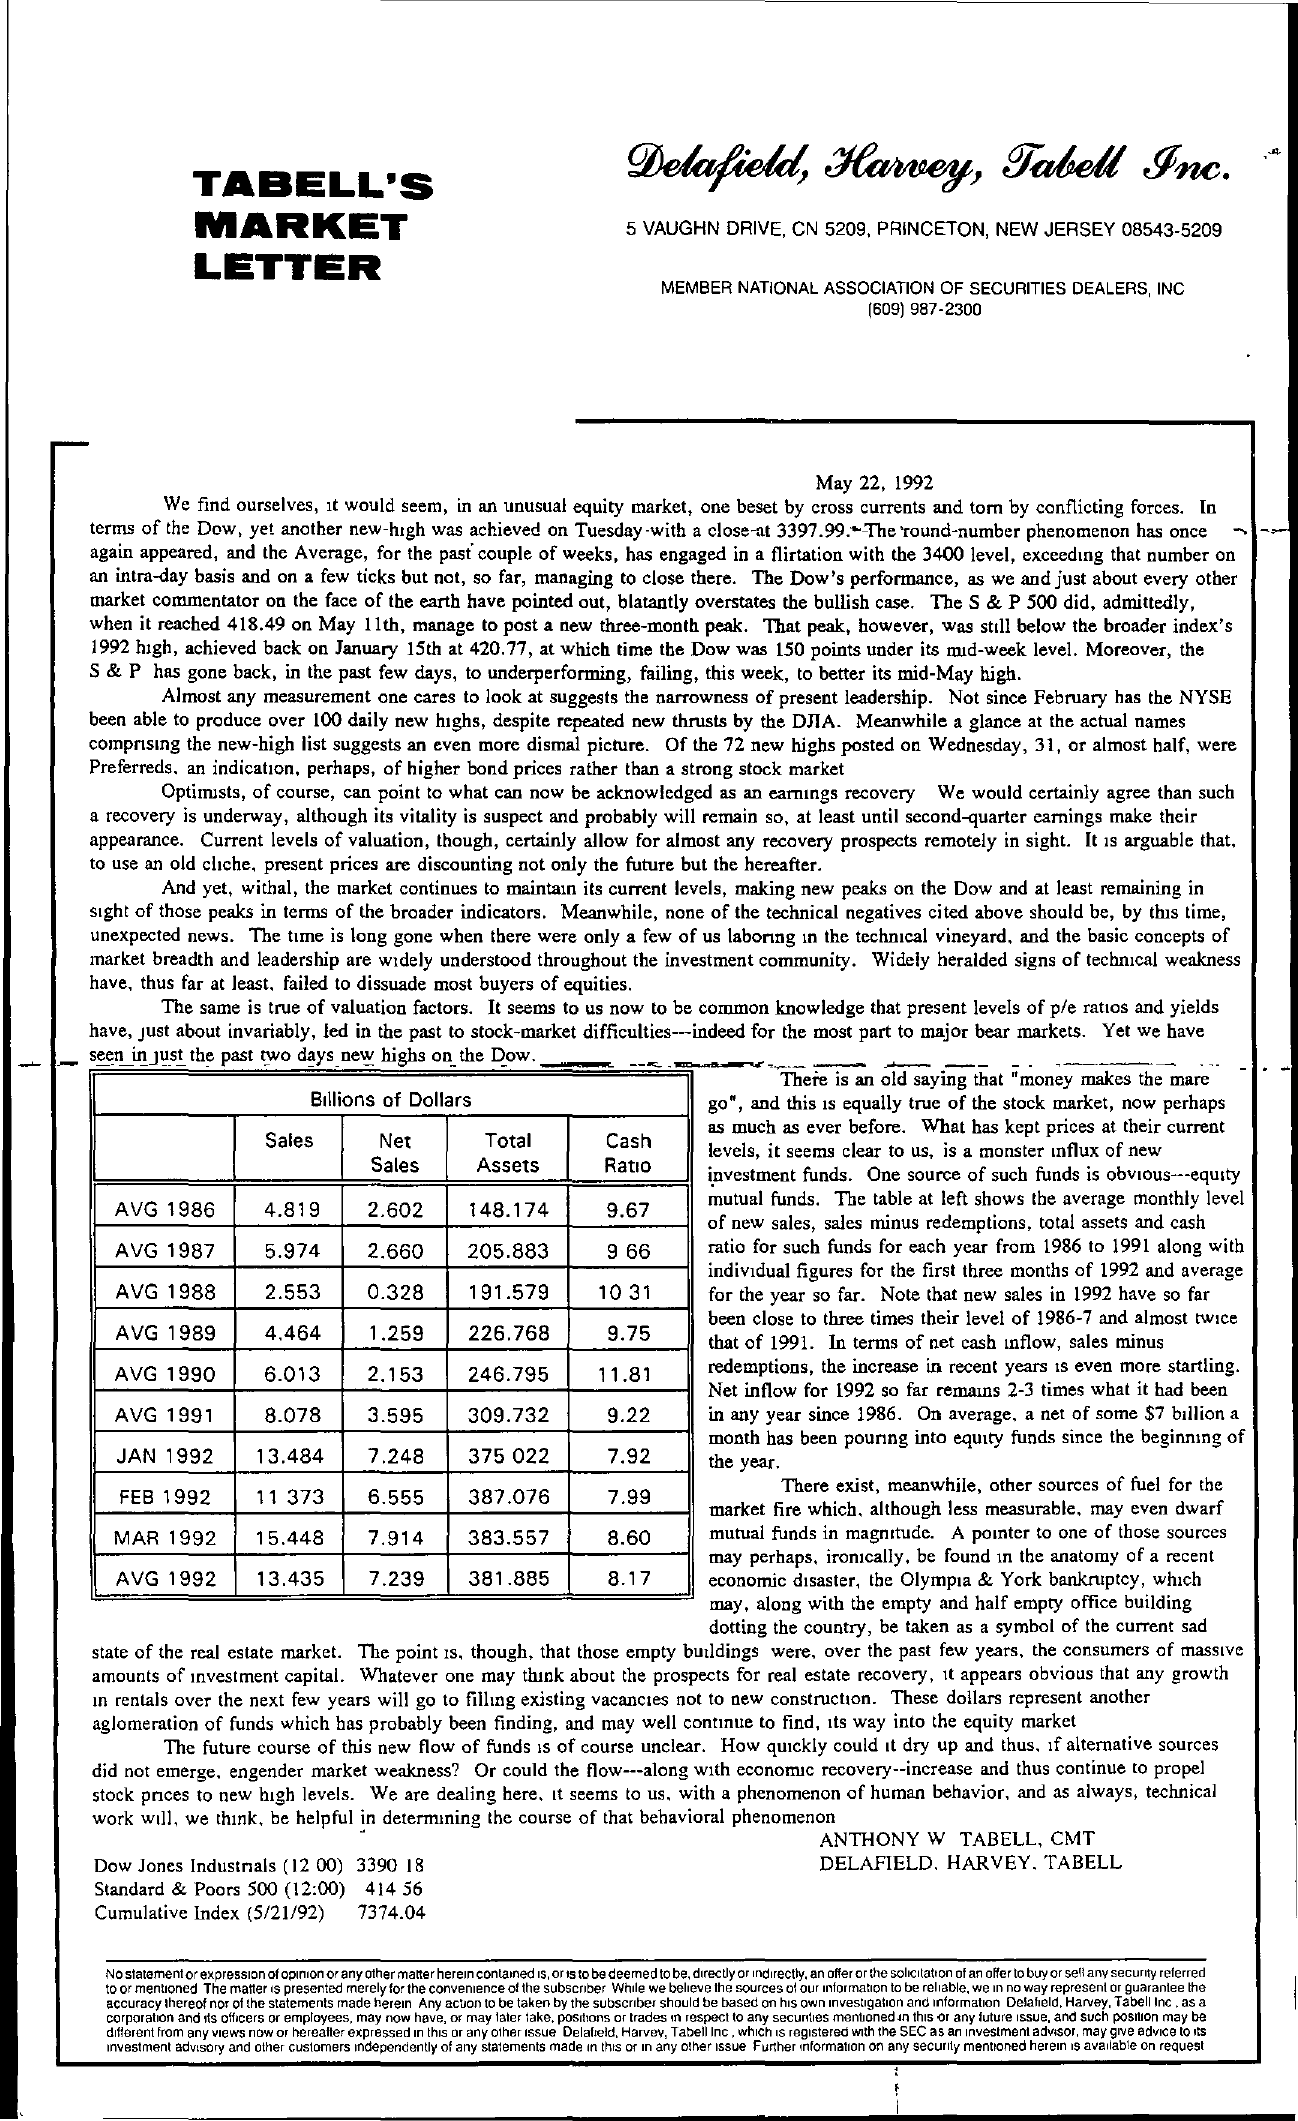 Tabell's Market Letter - May 22, 1992